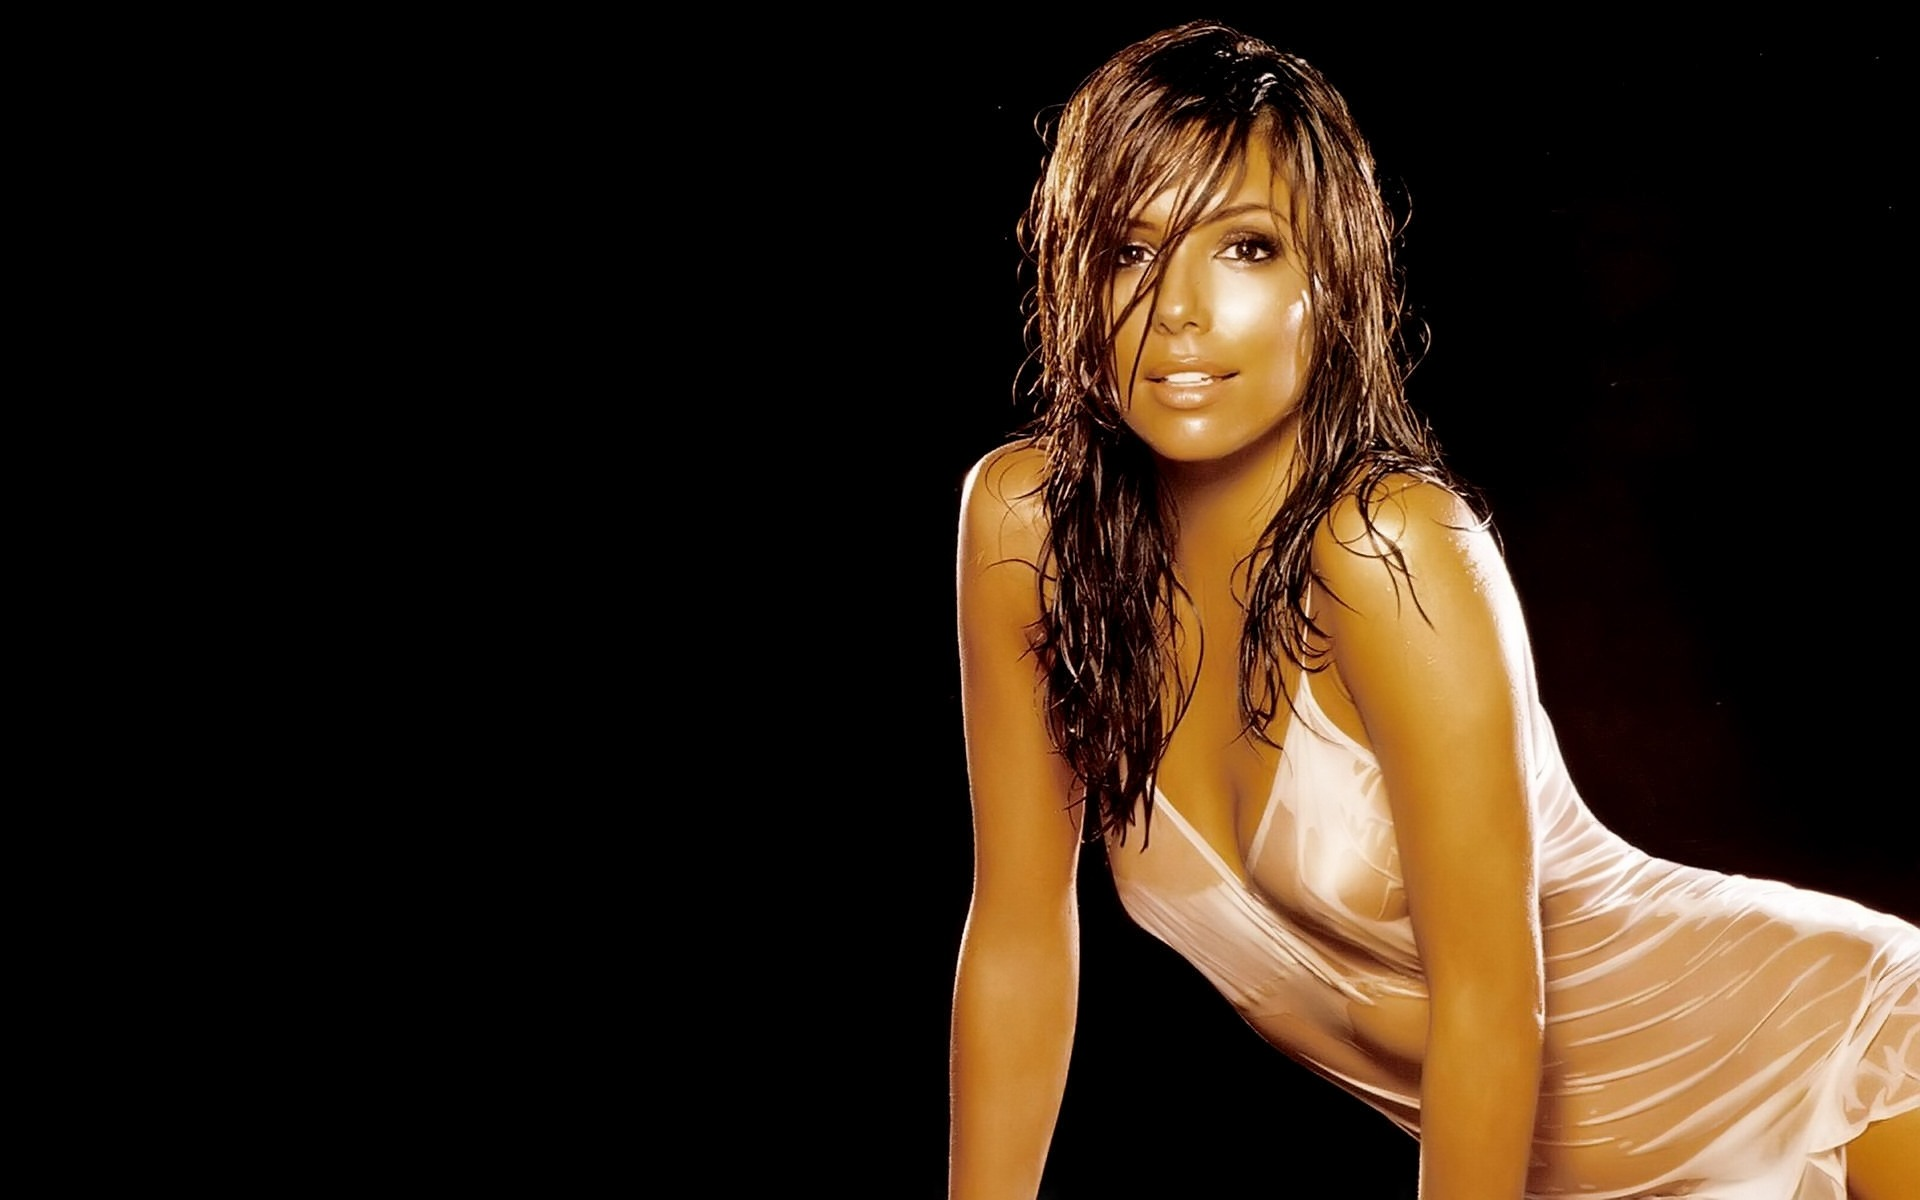 http://www.screenpaper.ru/images/stories/oboi/girls/znamenitosti/1/eva-longoria-hot-1920-1200-1816.jpg